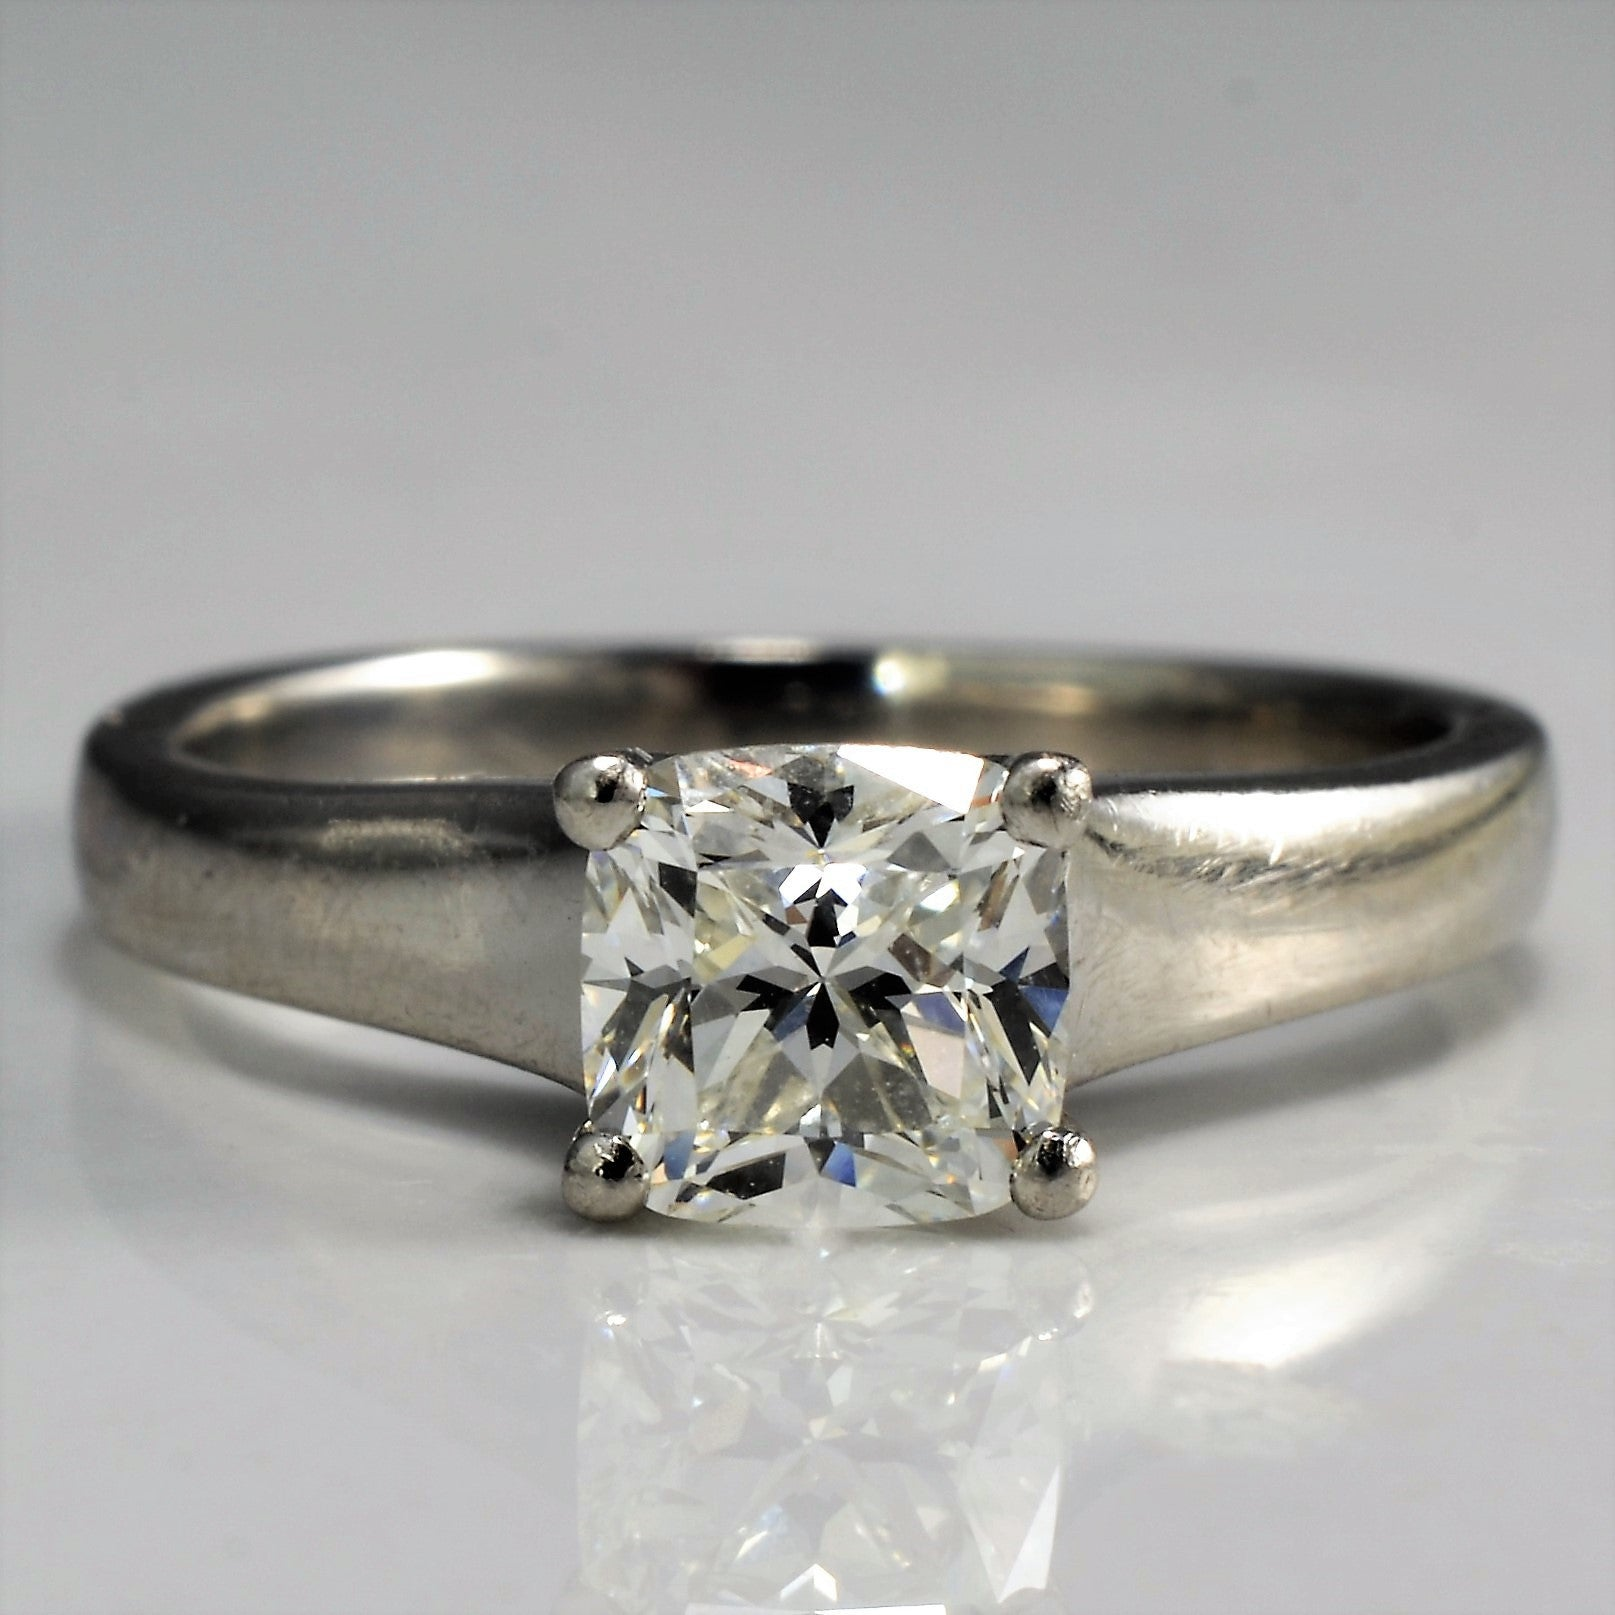 category rings diamonds gold product forever number ring h white samuel webstore diamond engagement occasion l daimond